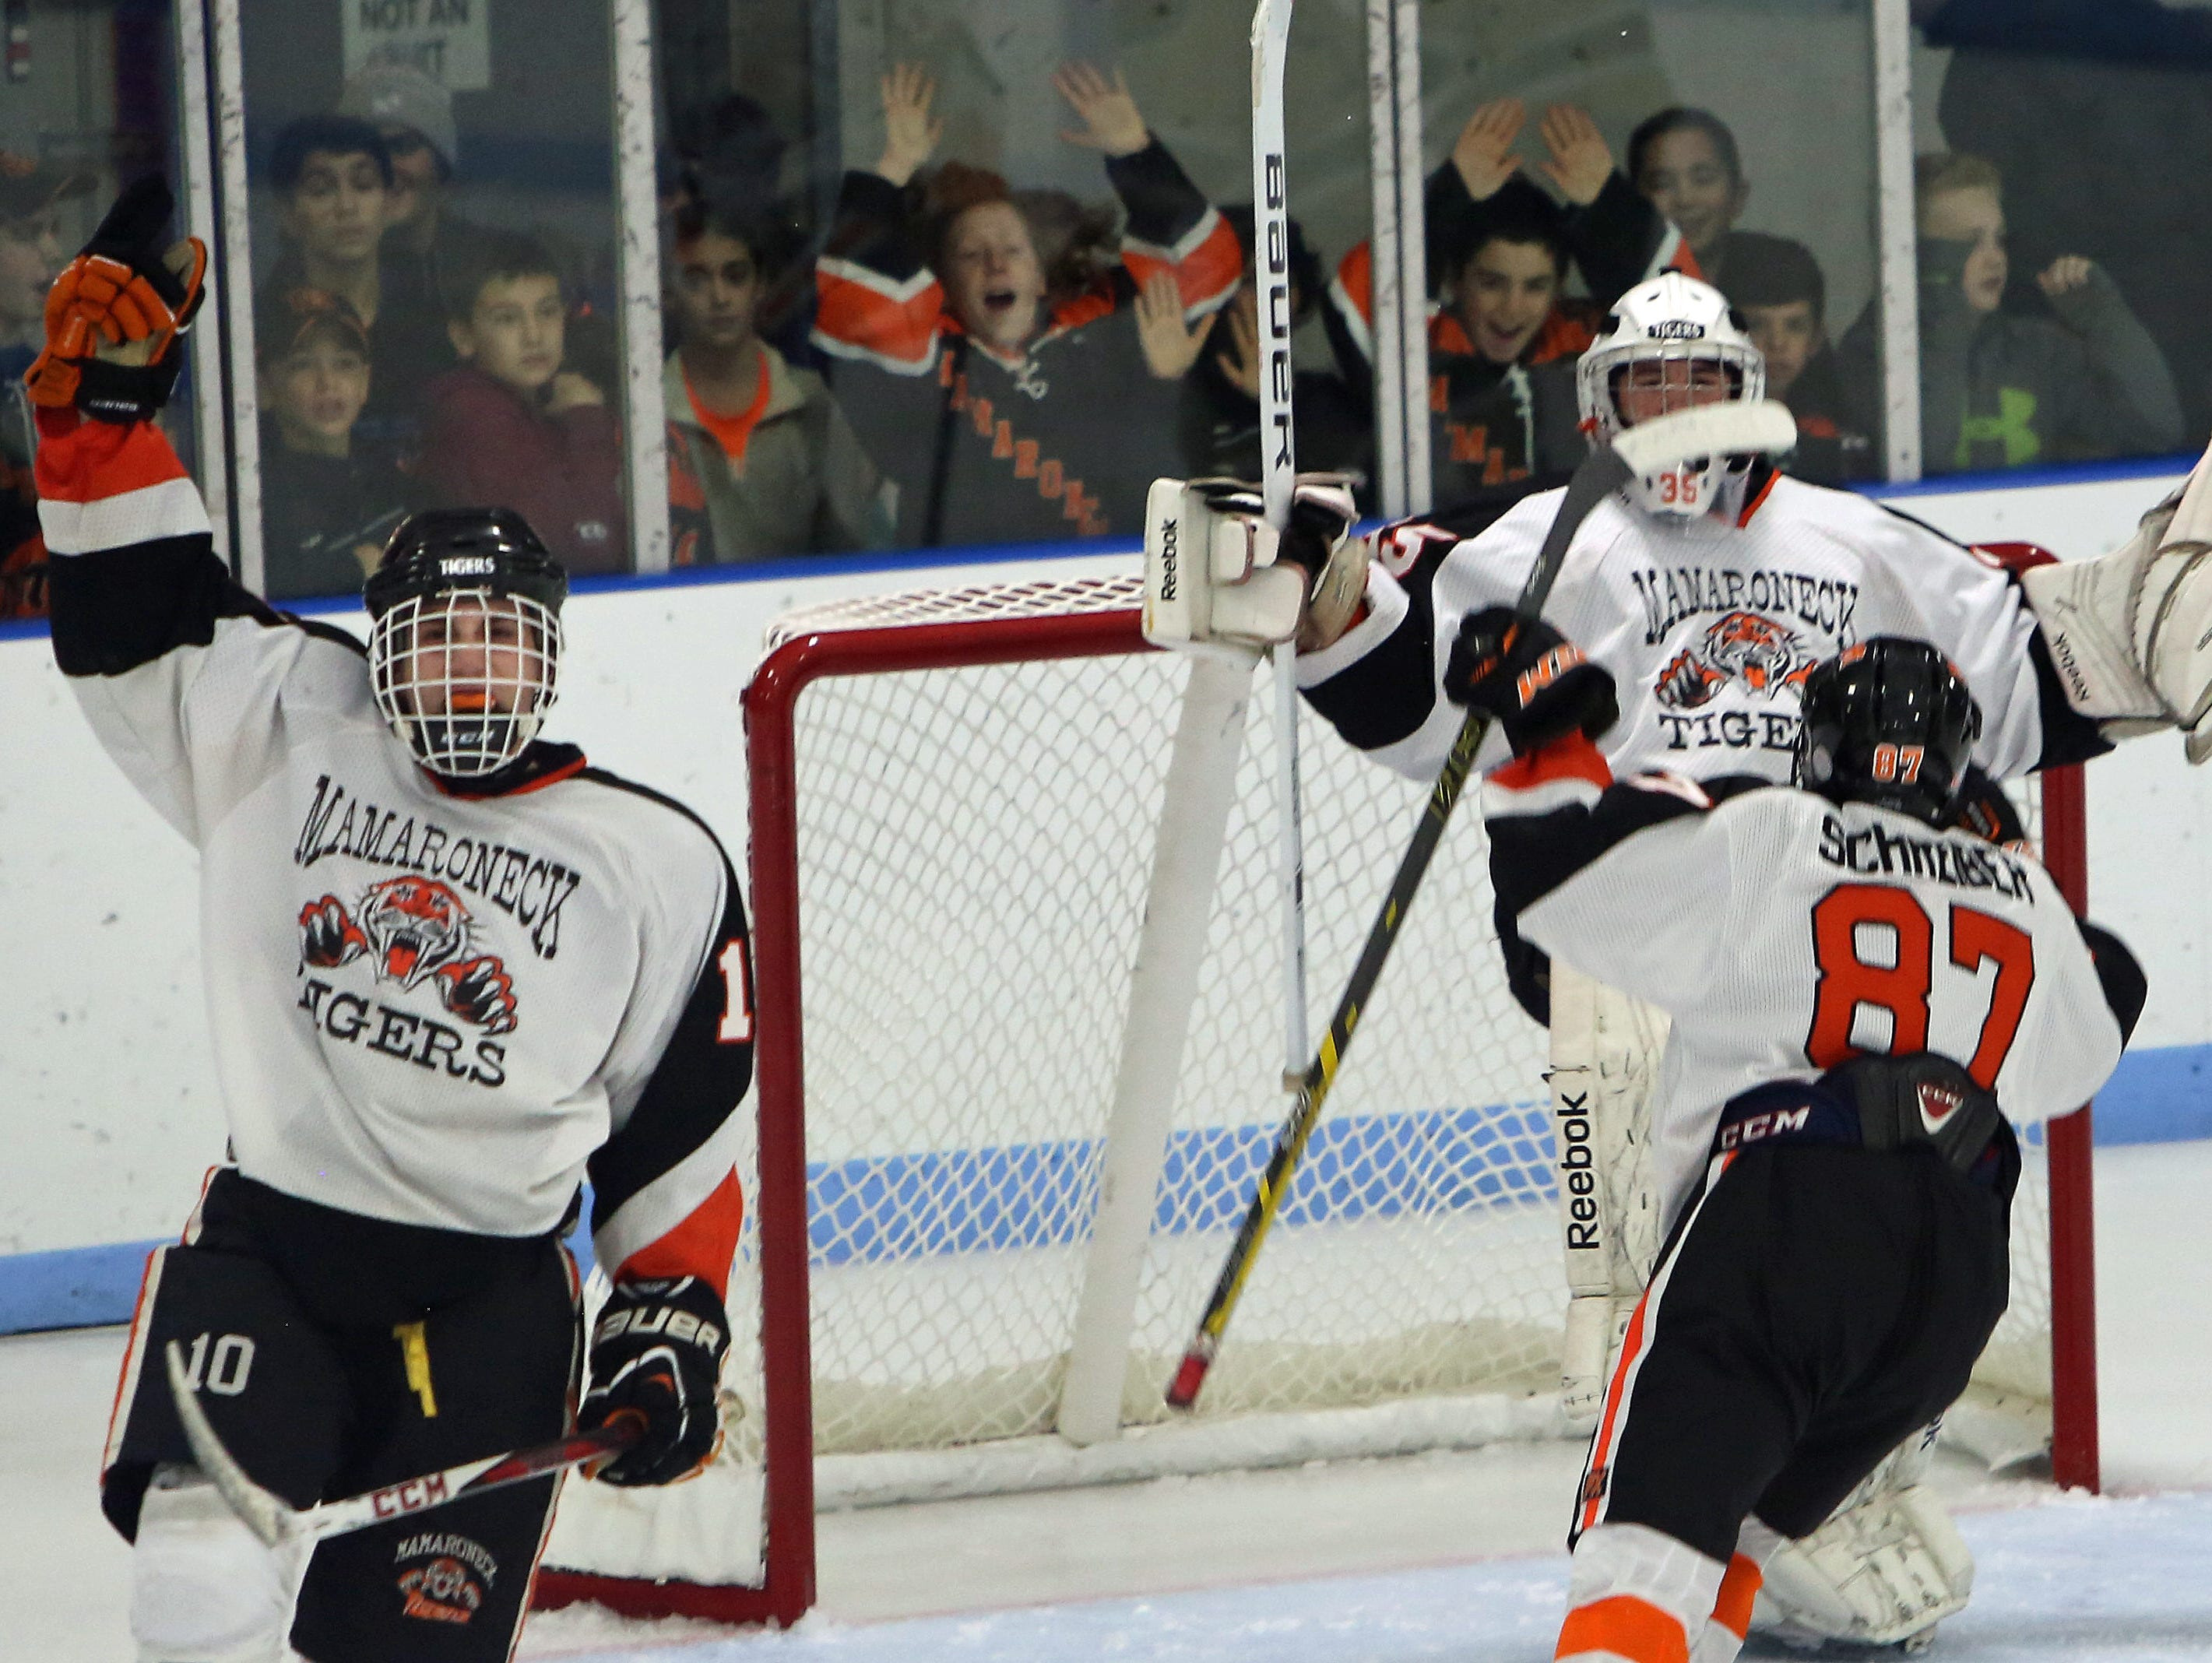 Mamaroneck is undefeated going into a Friday showdown with Suffern.